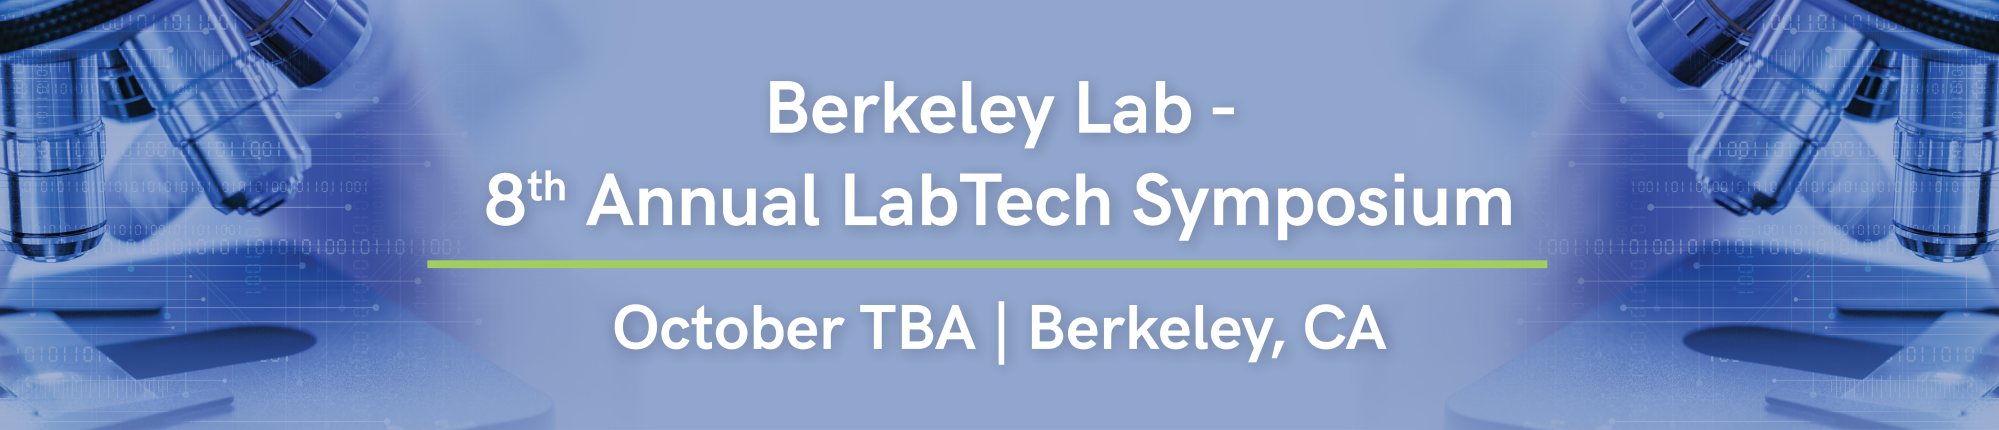 Berkeley Lab -  8th Annual LabTech Symposium